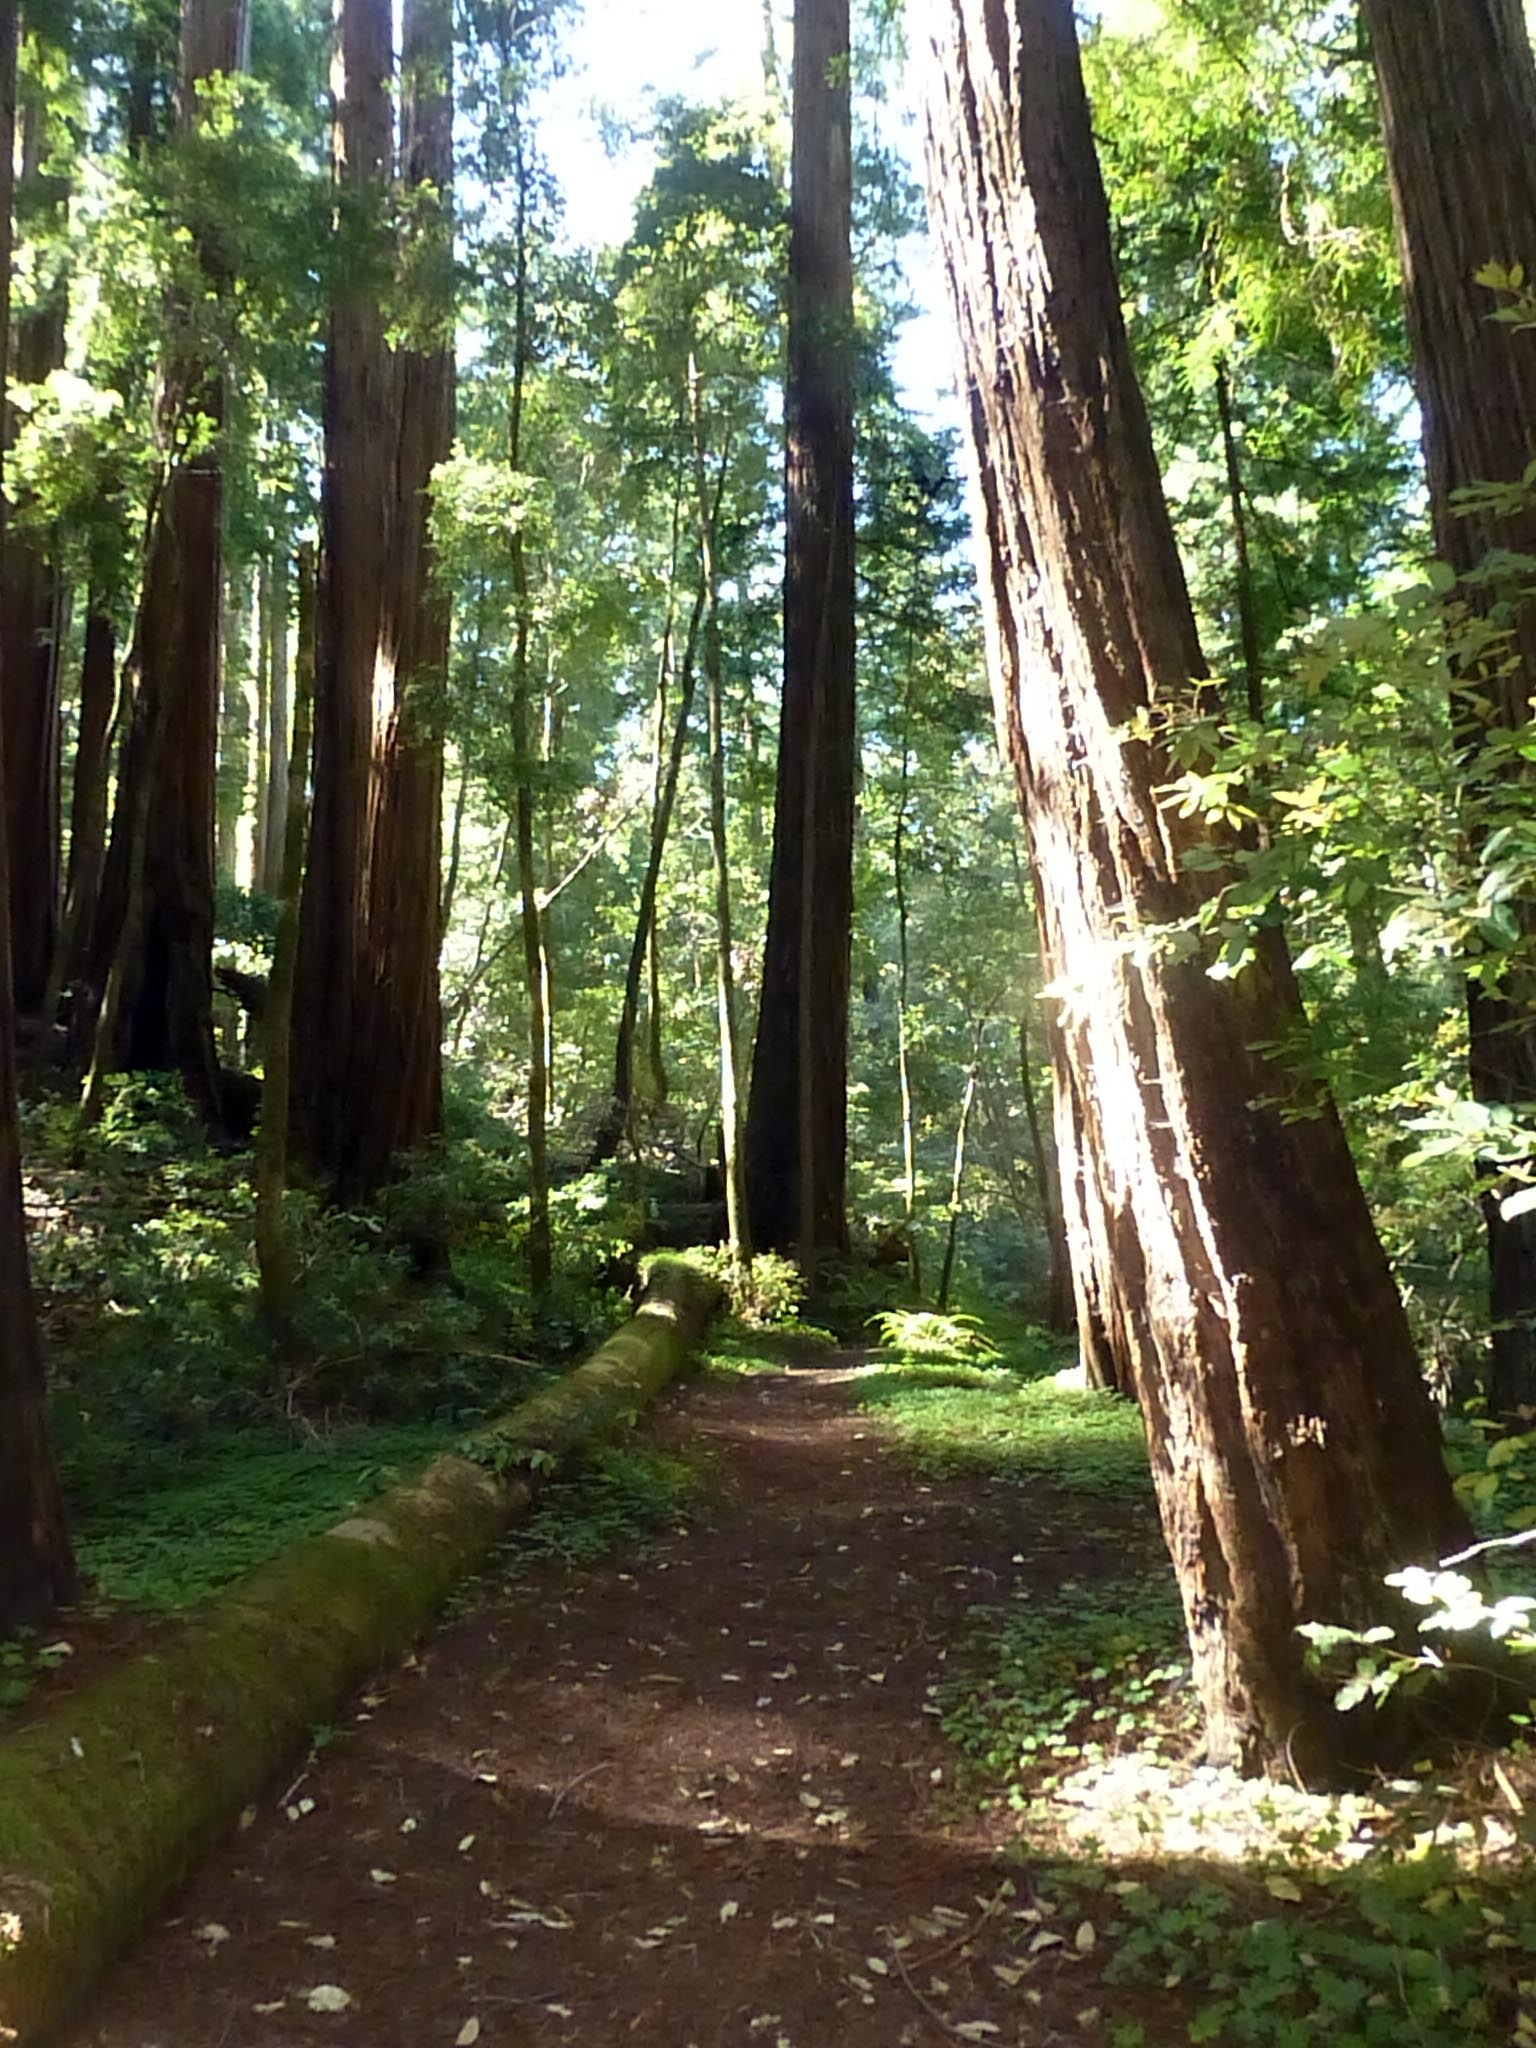 Beneath the redwood canopy, the forest floor along the Timms Creek Trail can feel as soft as a wool carpet. (photo by D. Speredelozzi)